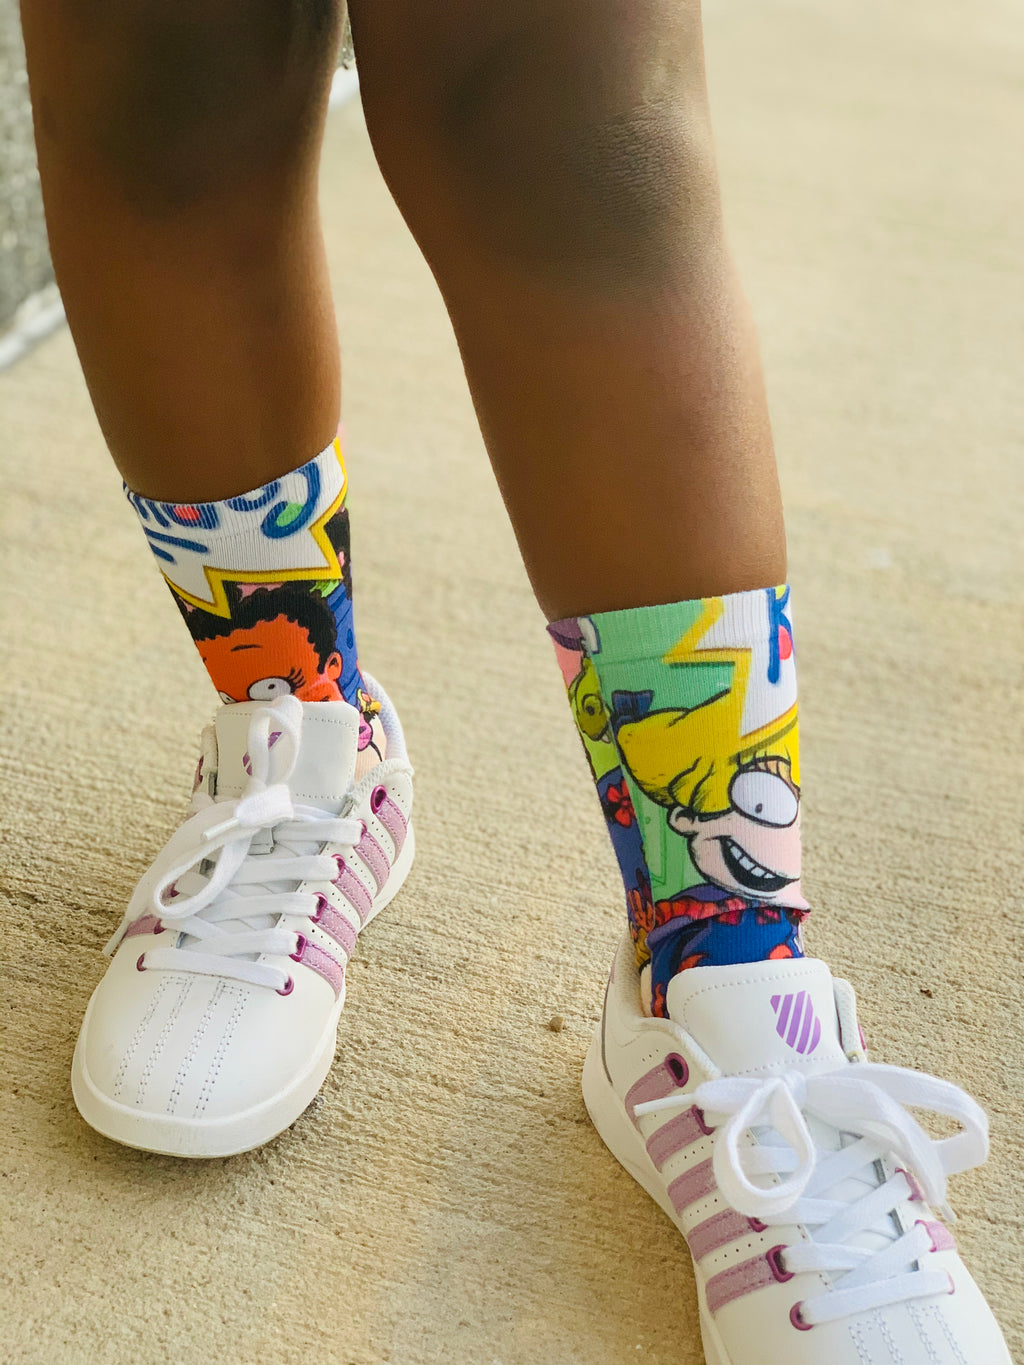 kids socks with Rugrats design cheap girls clothes little boy rugrats clothes rugrats socks